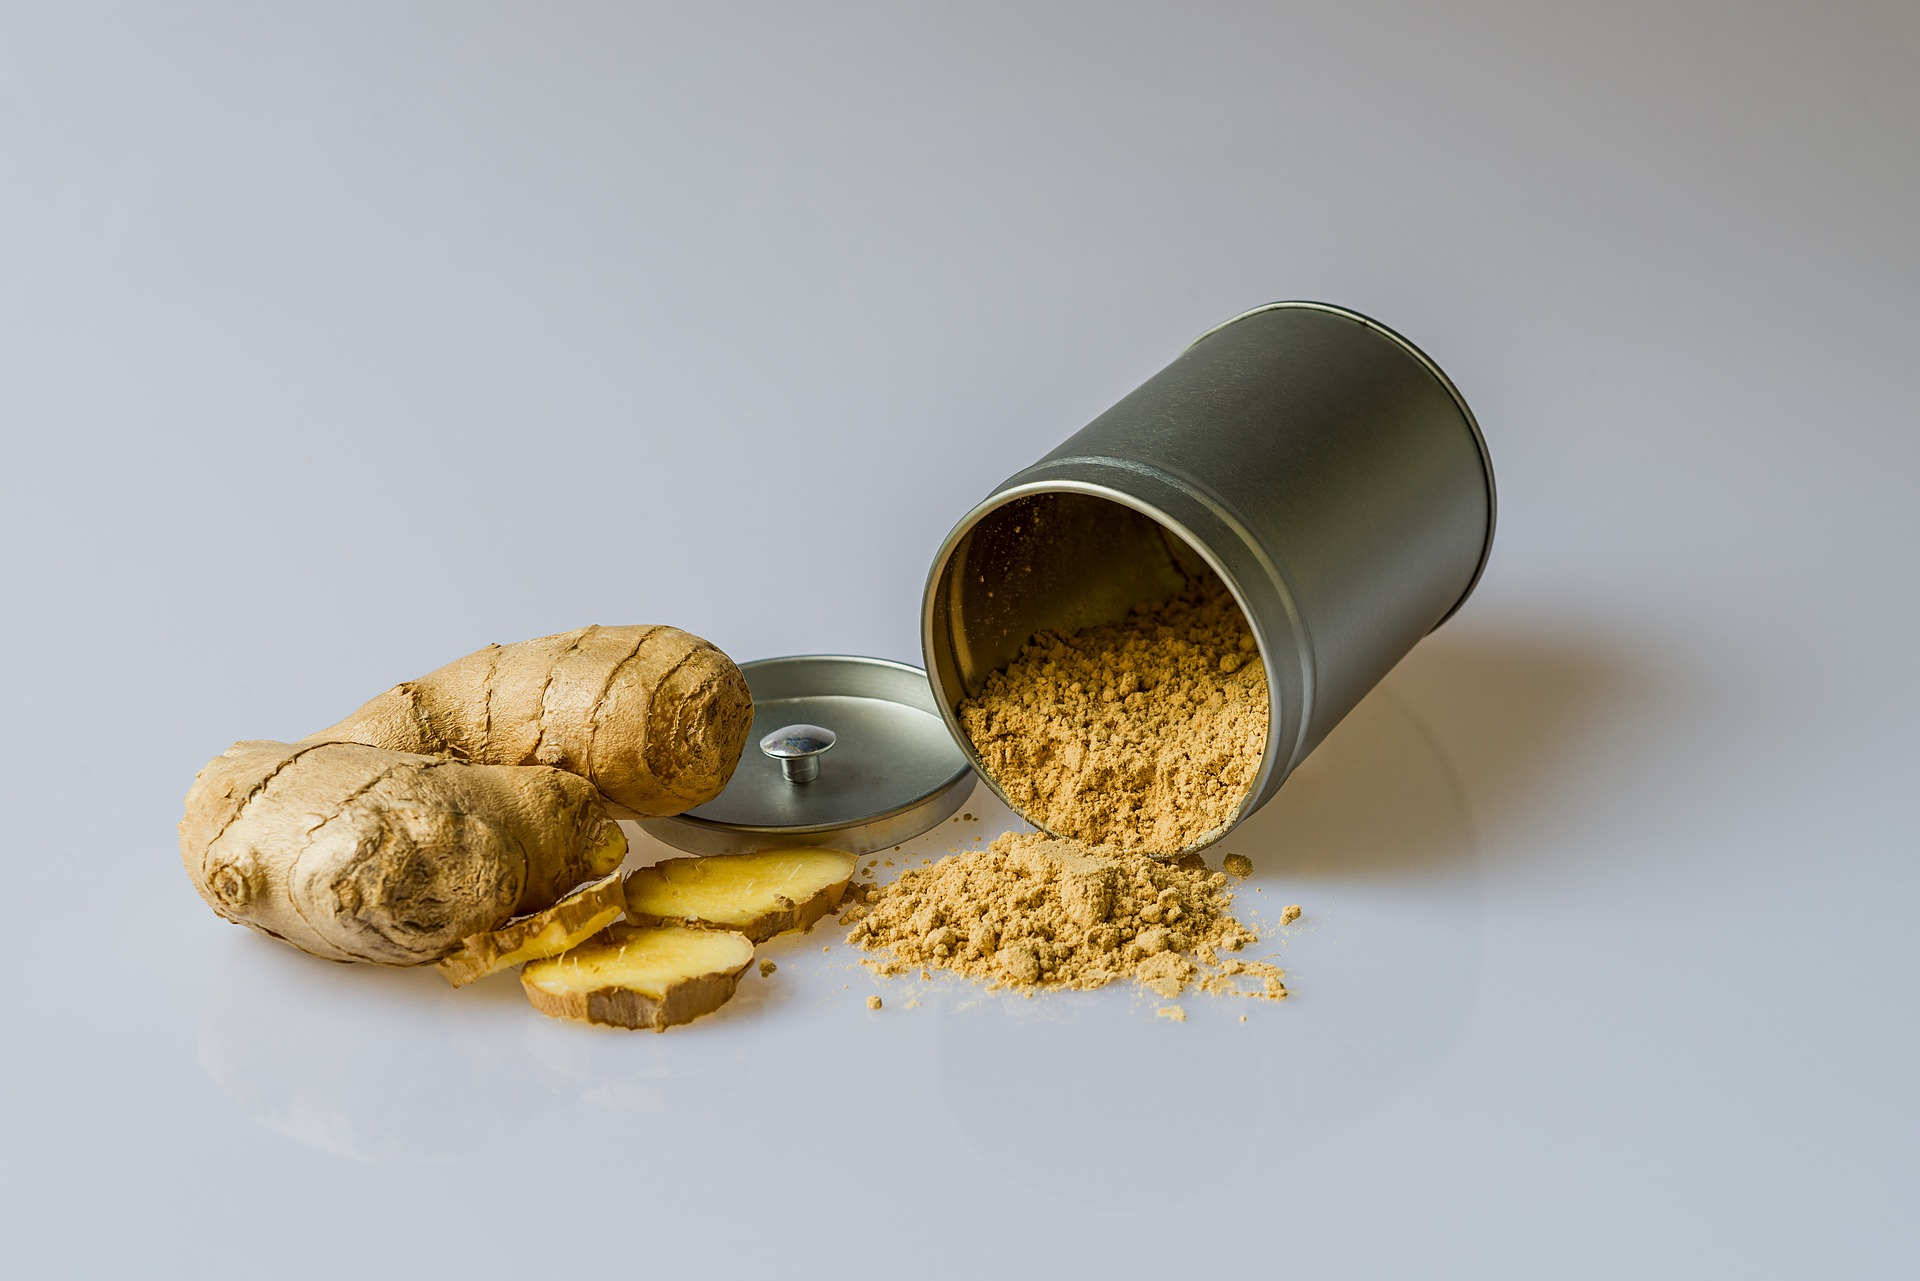 What is ginger good for?